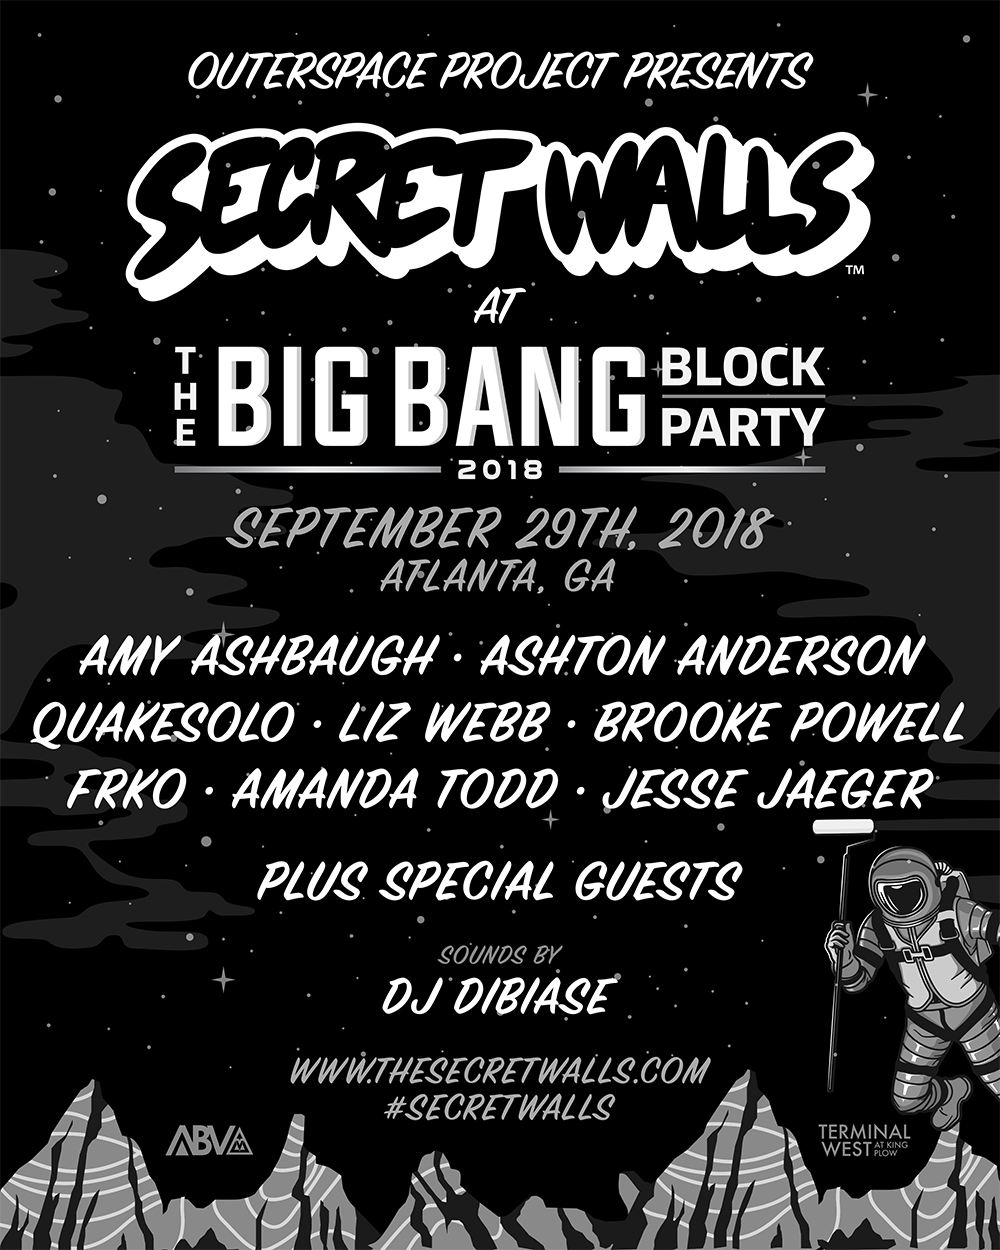 OSP-SecretWalls-Flyer-WEB.jpg